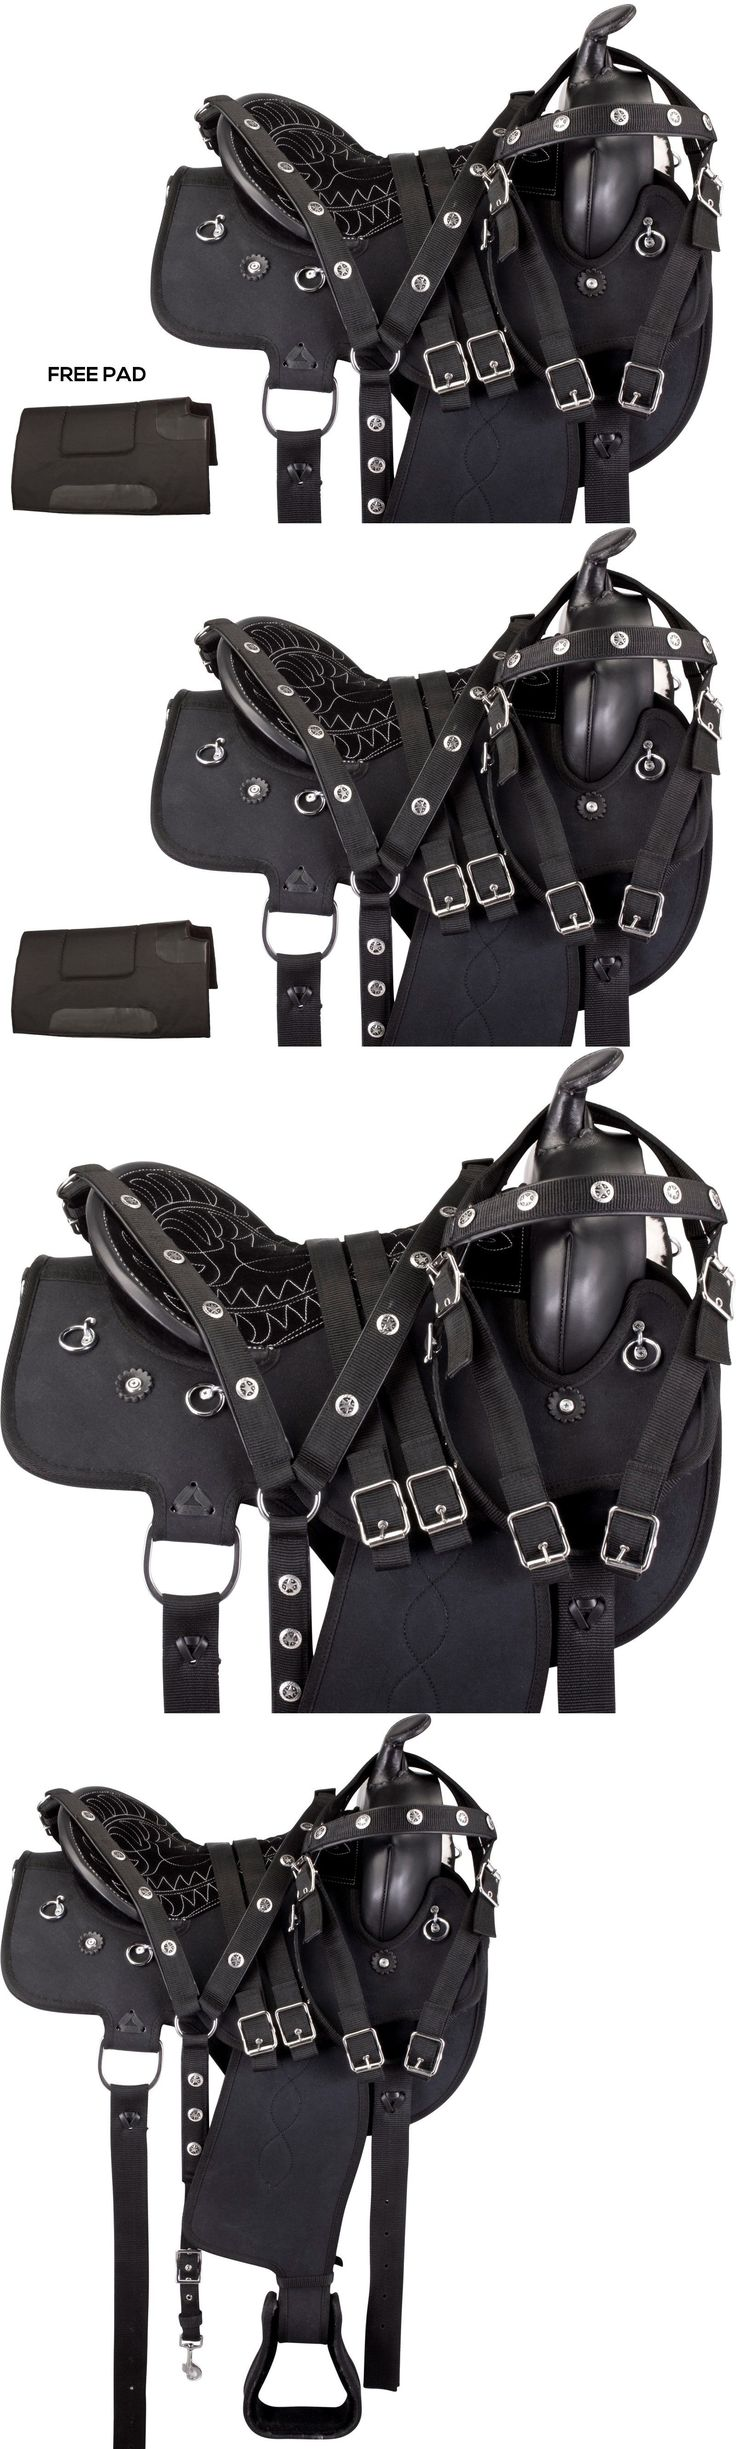 Saddles 47291: 16 17 Light Weight Western Horse Saddle Gaited Pleasure Trail Endurance Tack -> BUY IT NOW ONLY: $189.99 on eBay!